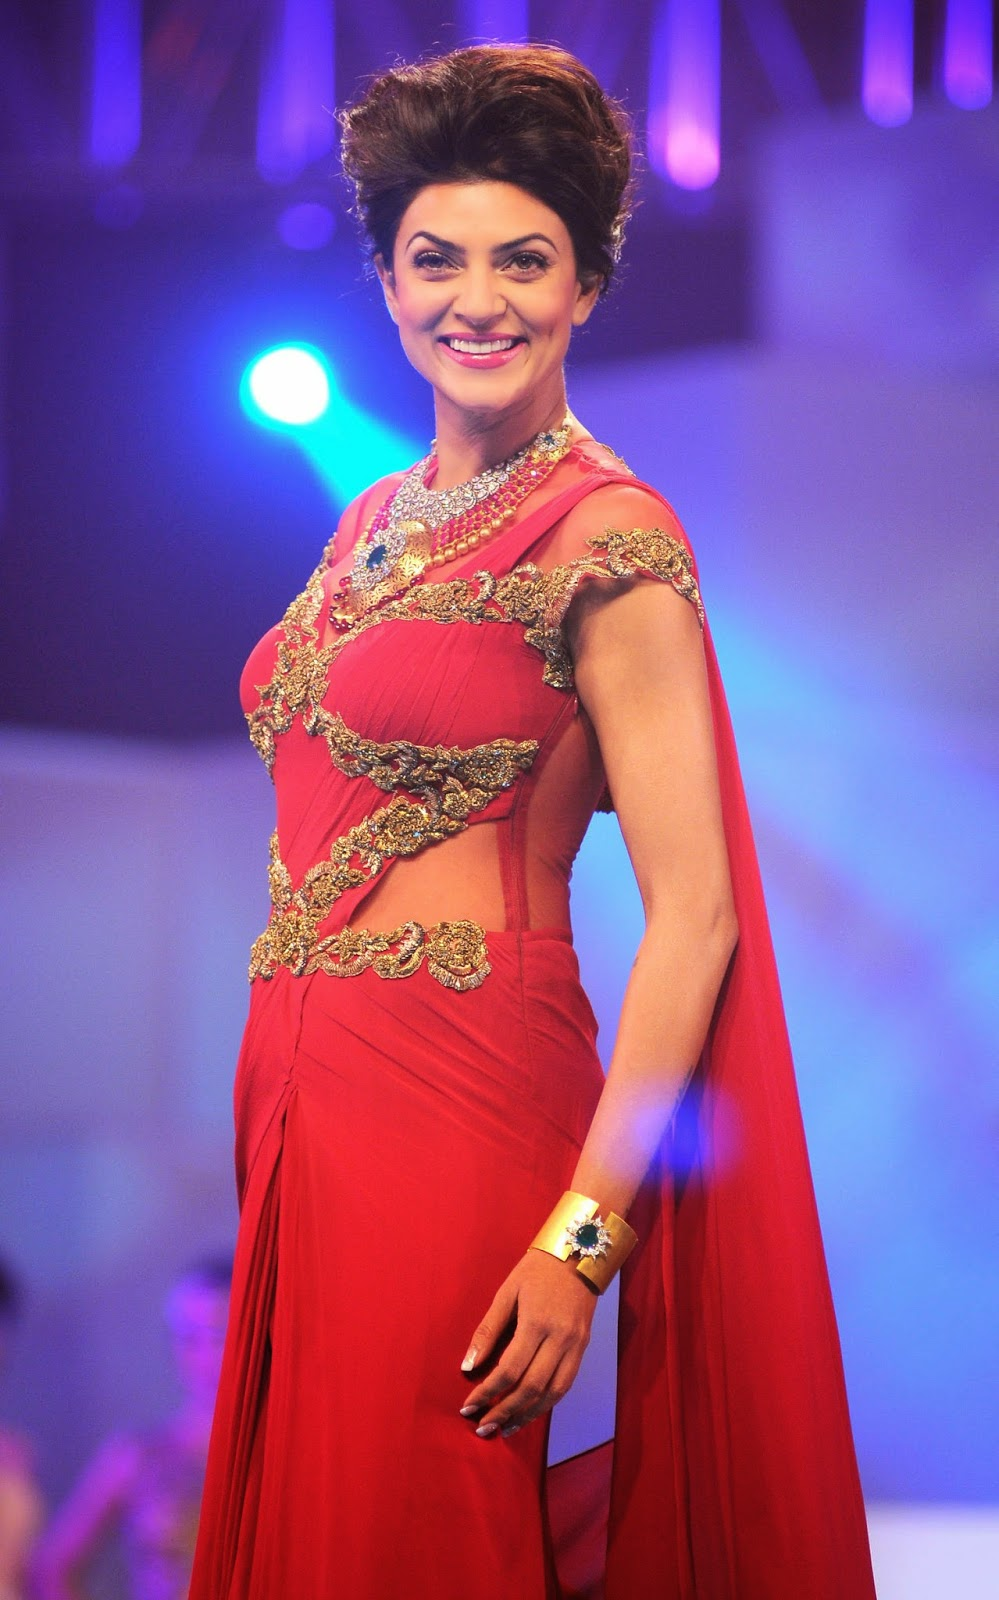 Sushmita Sen Spicy Hip Navel Photos In Red Saree